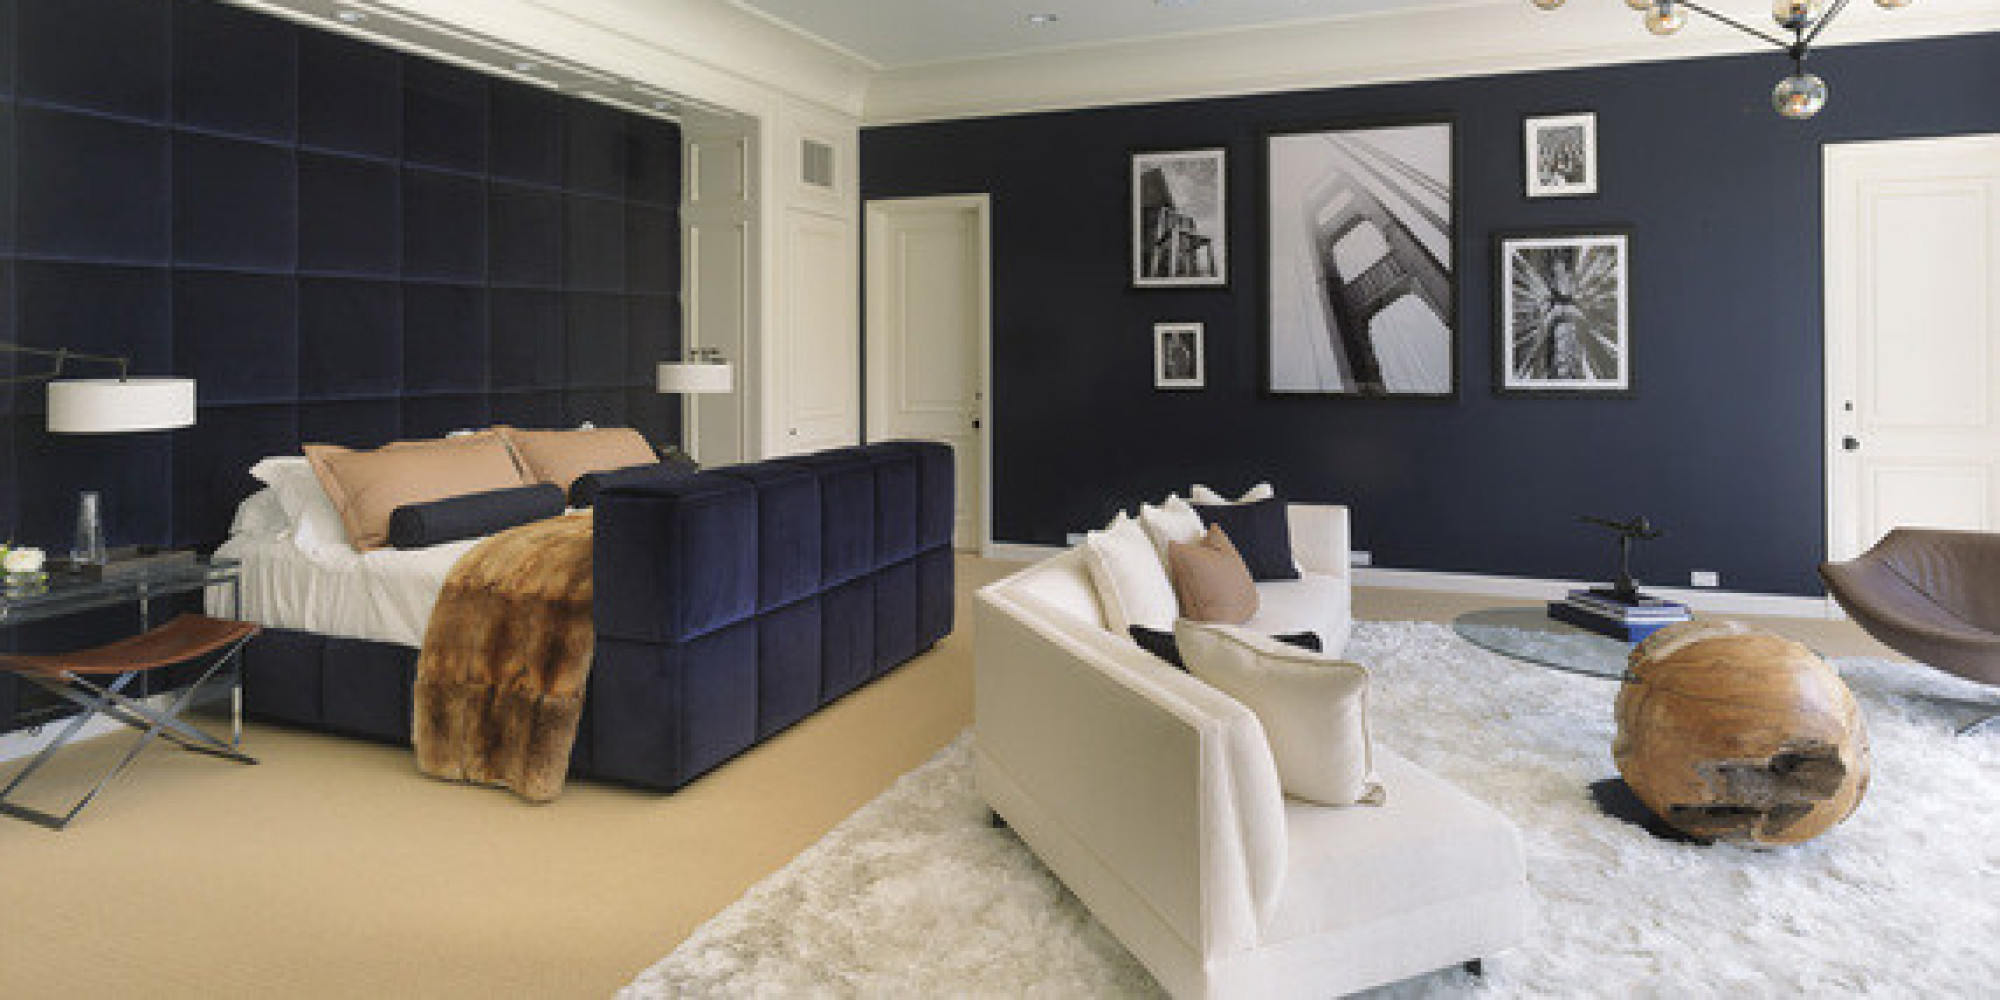 mens colors interior ideas design bedrooms elegant image masculine bedroom paint decorate trendy of cdbossington